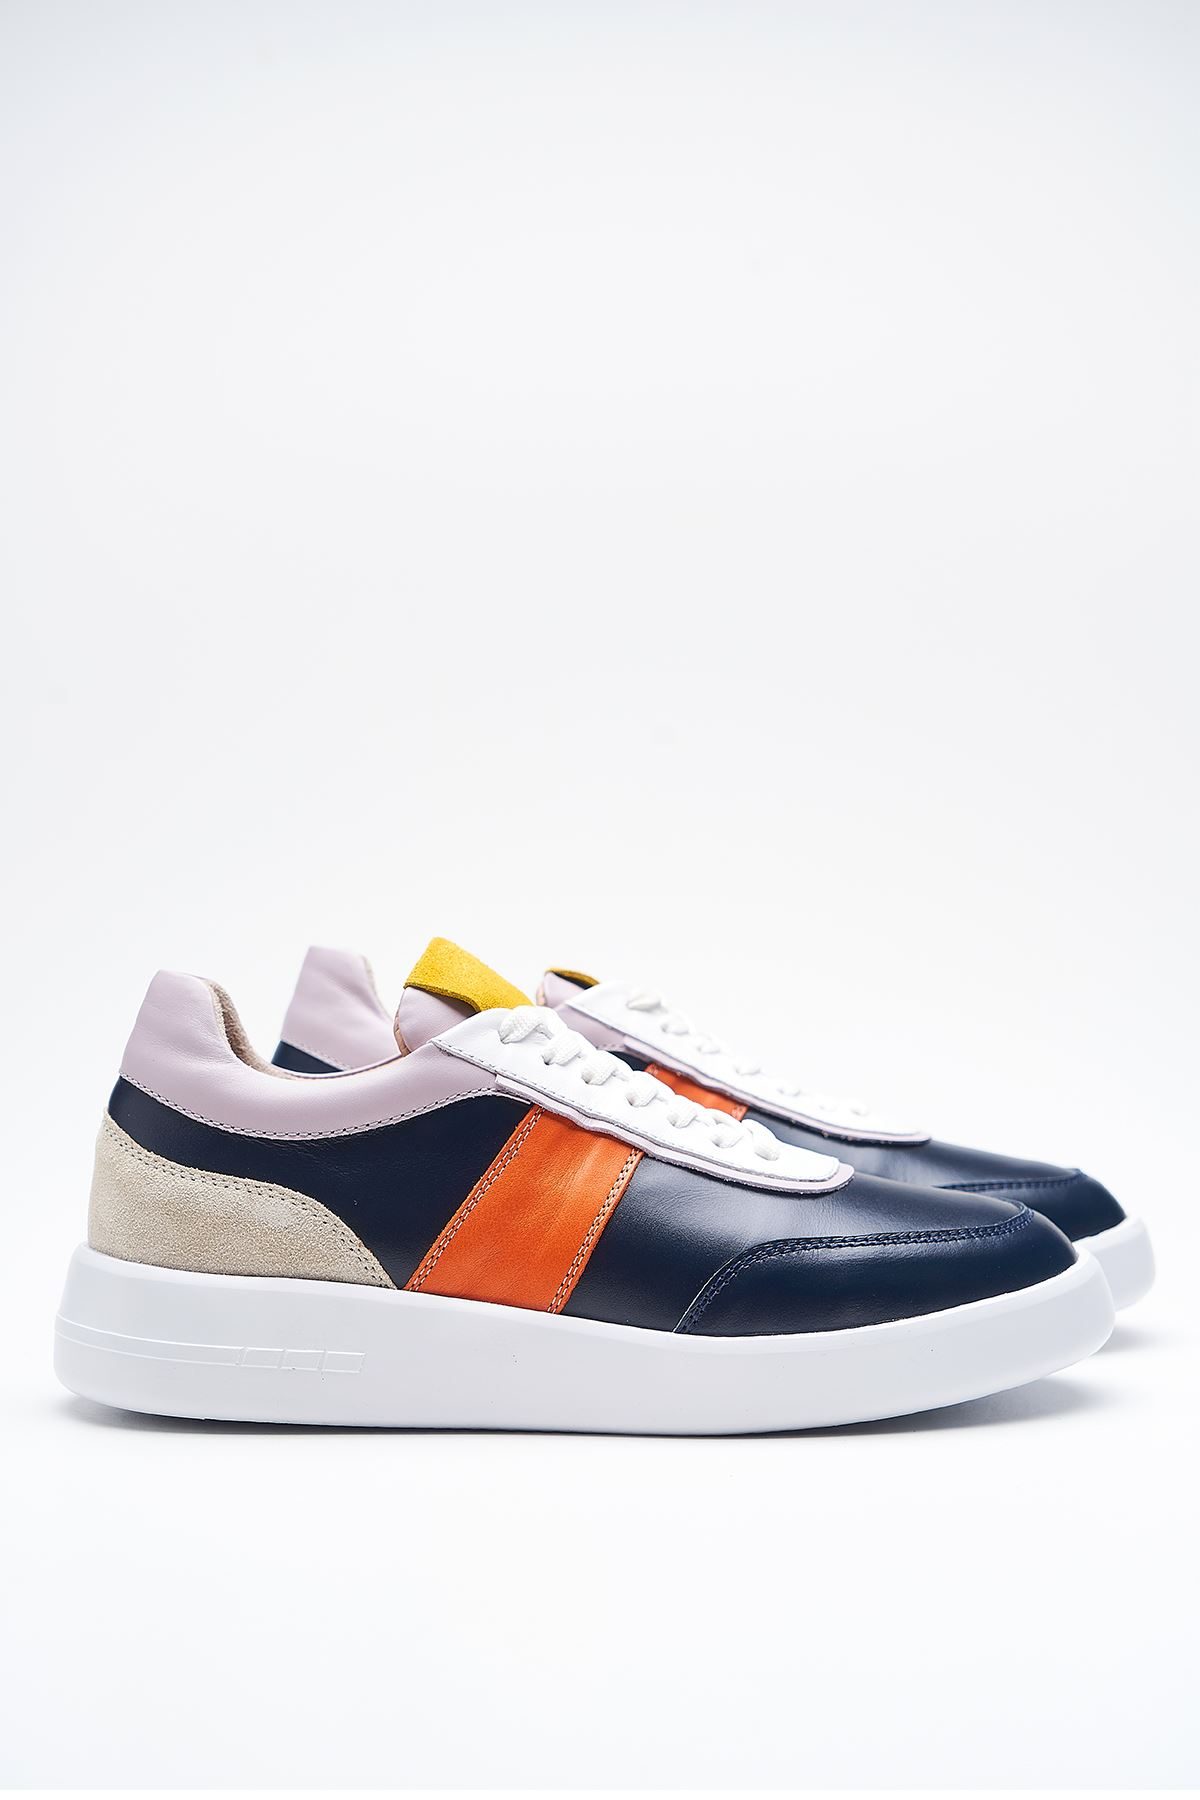 Lupin Navy Blue Genuine Leather Women Sneakers